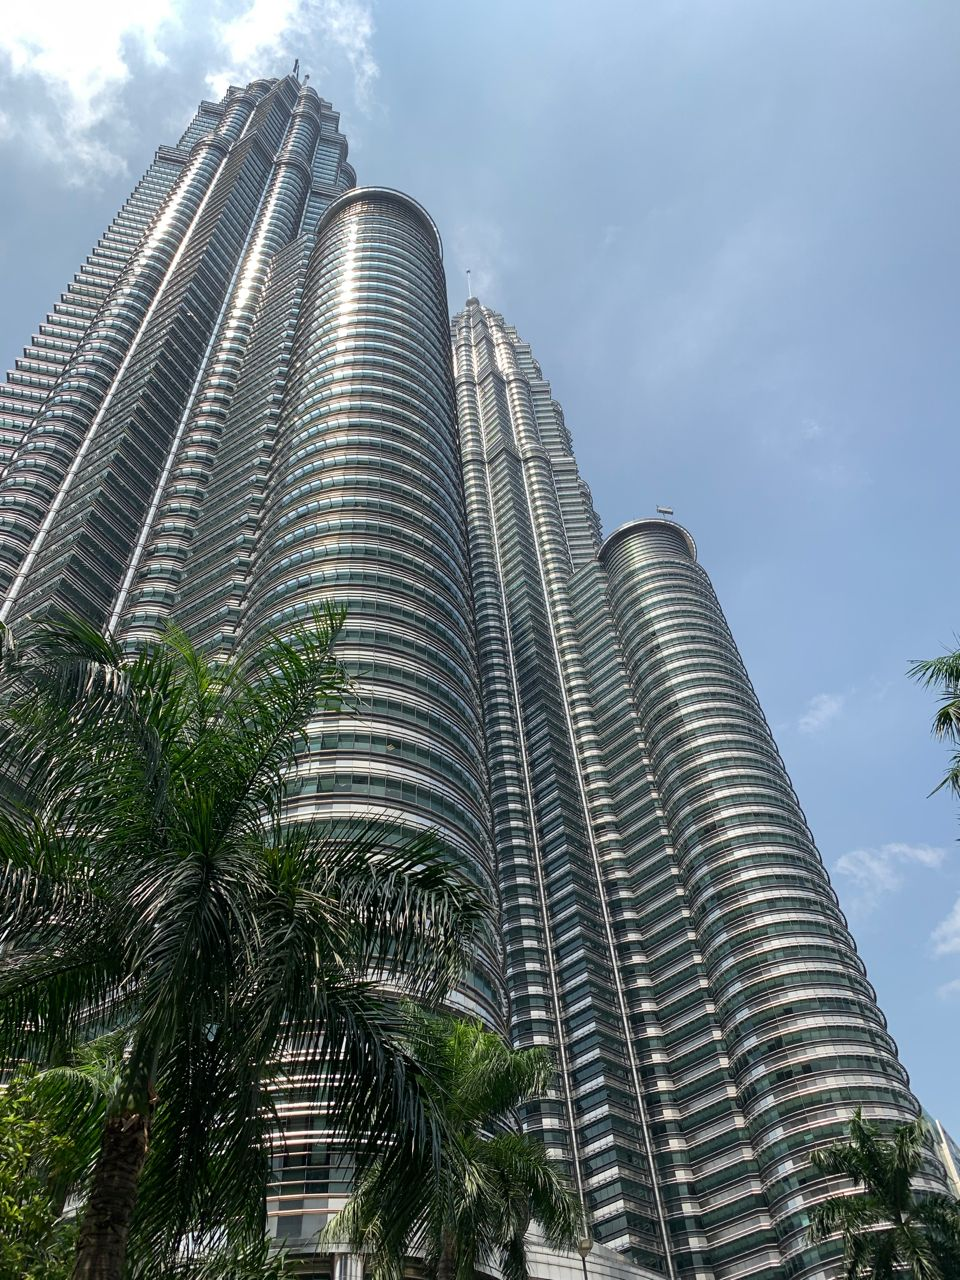 The Petronas Twin Towers, world's highest structure from 1998 to 2004